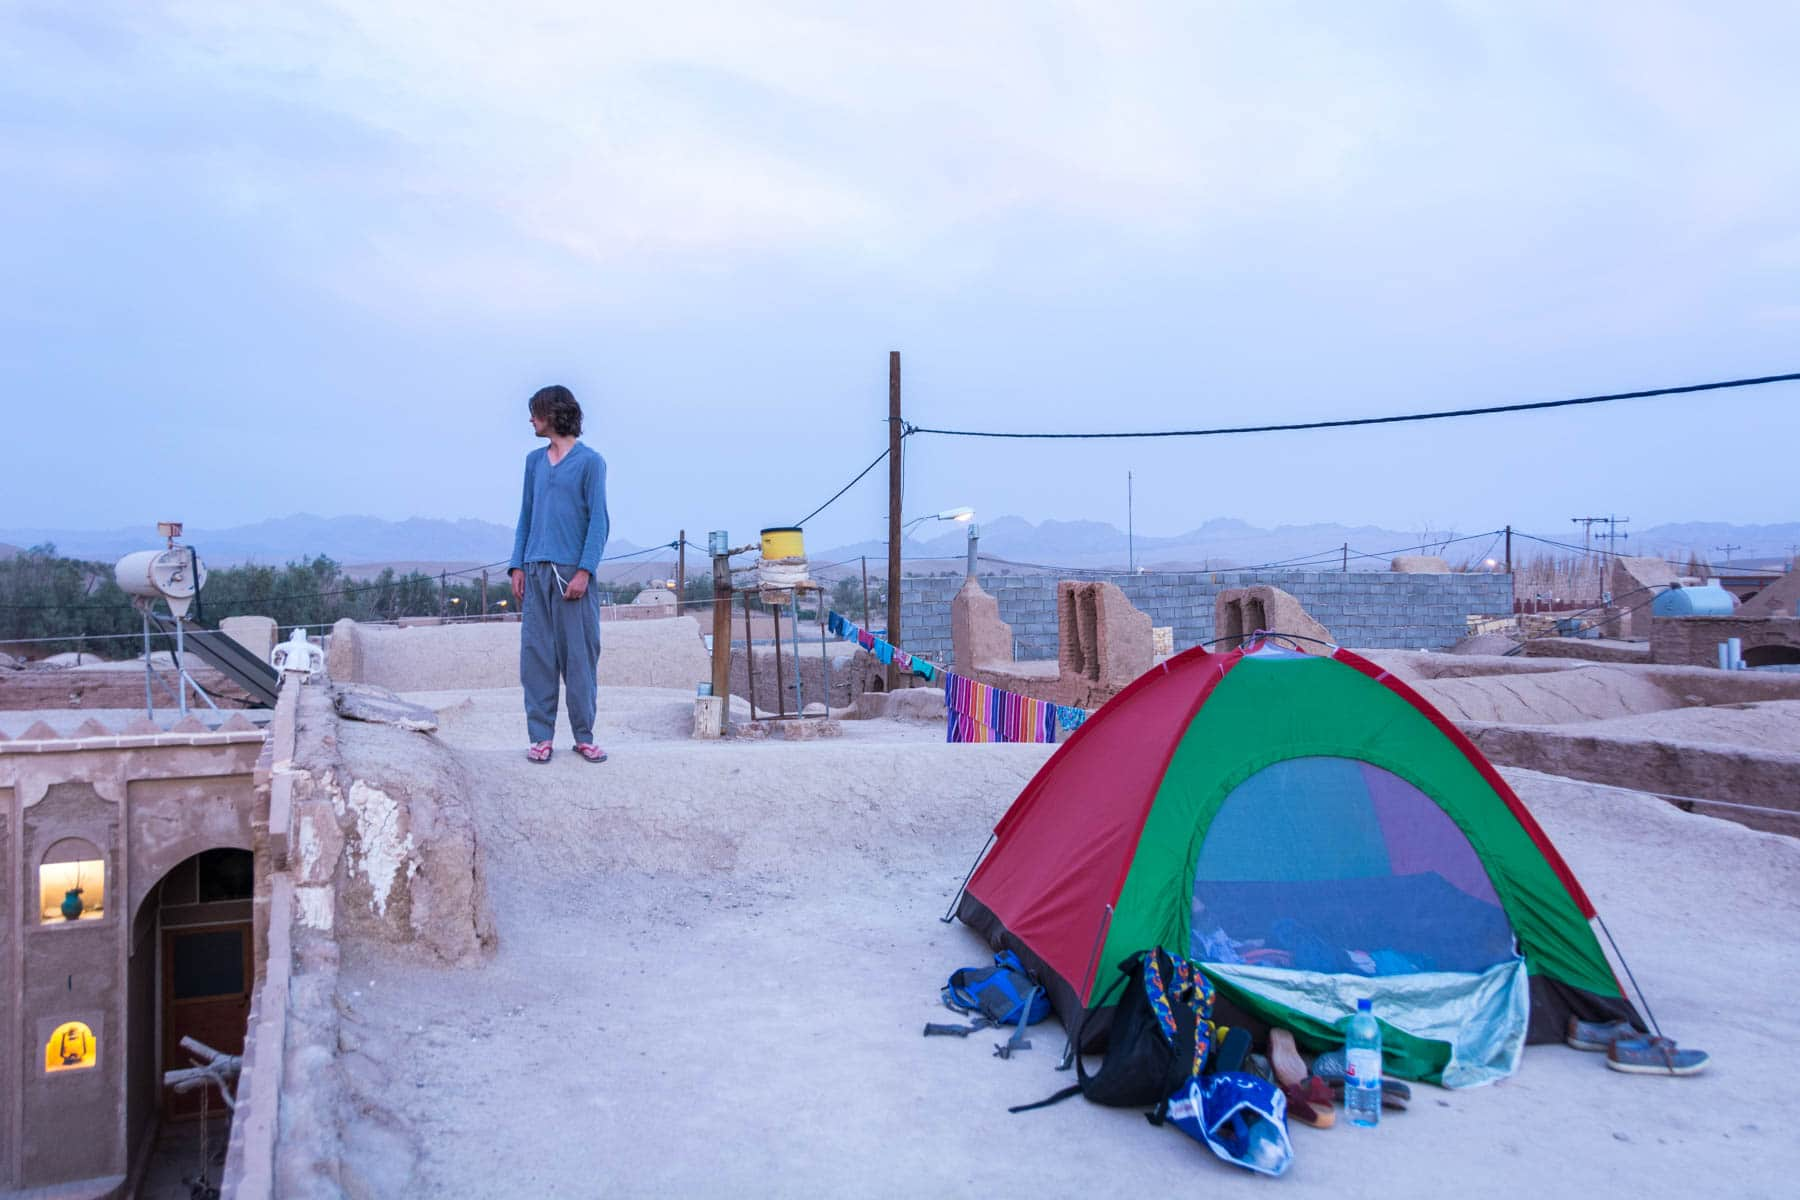 Camping on the roof of Barandaz Lodge in the desert town of Farahzad, Iran